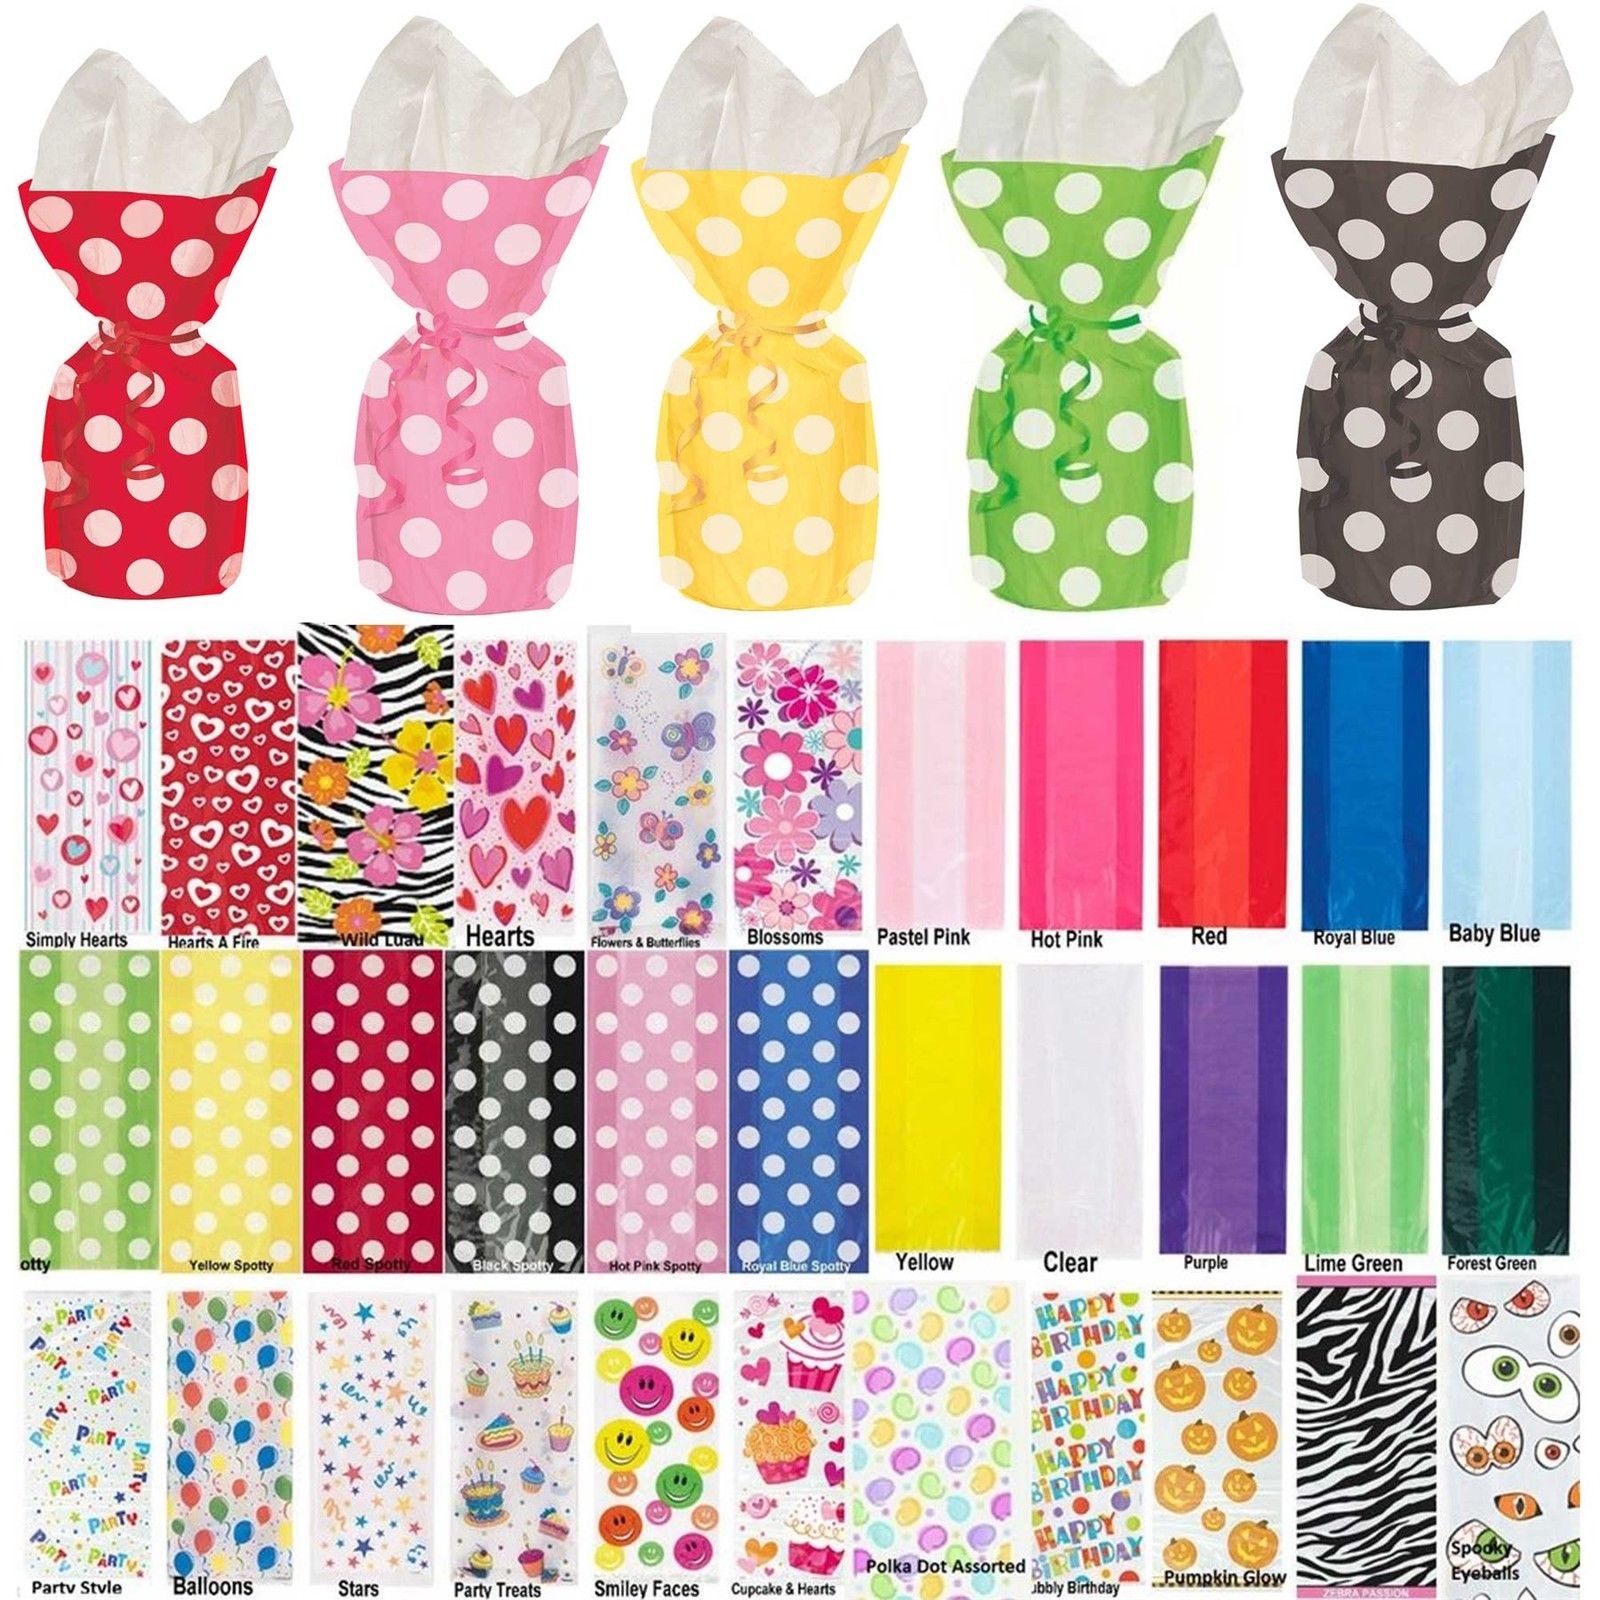 Cello Bags Party Cellophane Loot Bags Polka Dots Clear